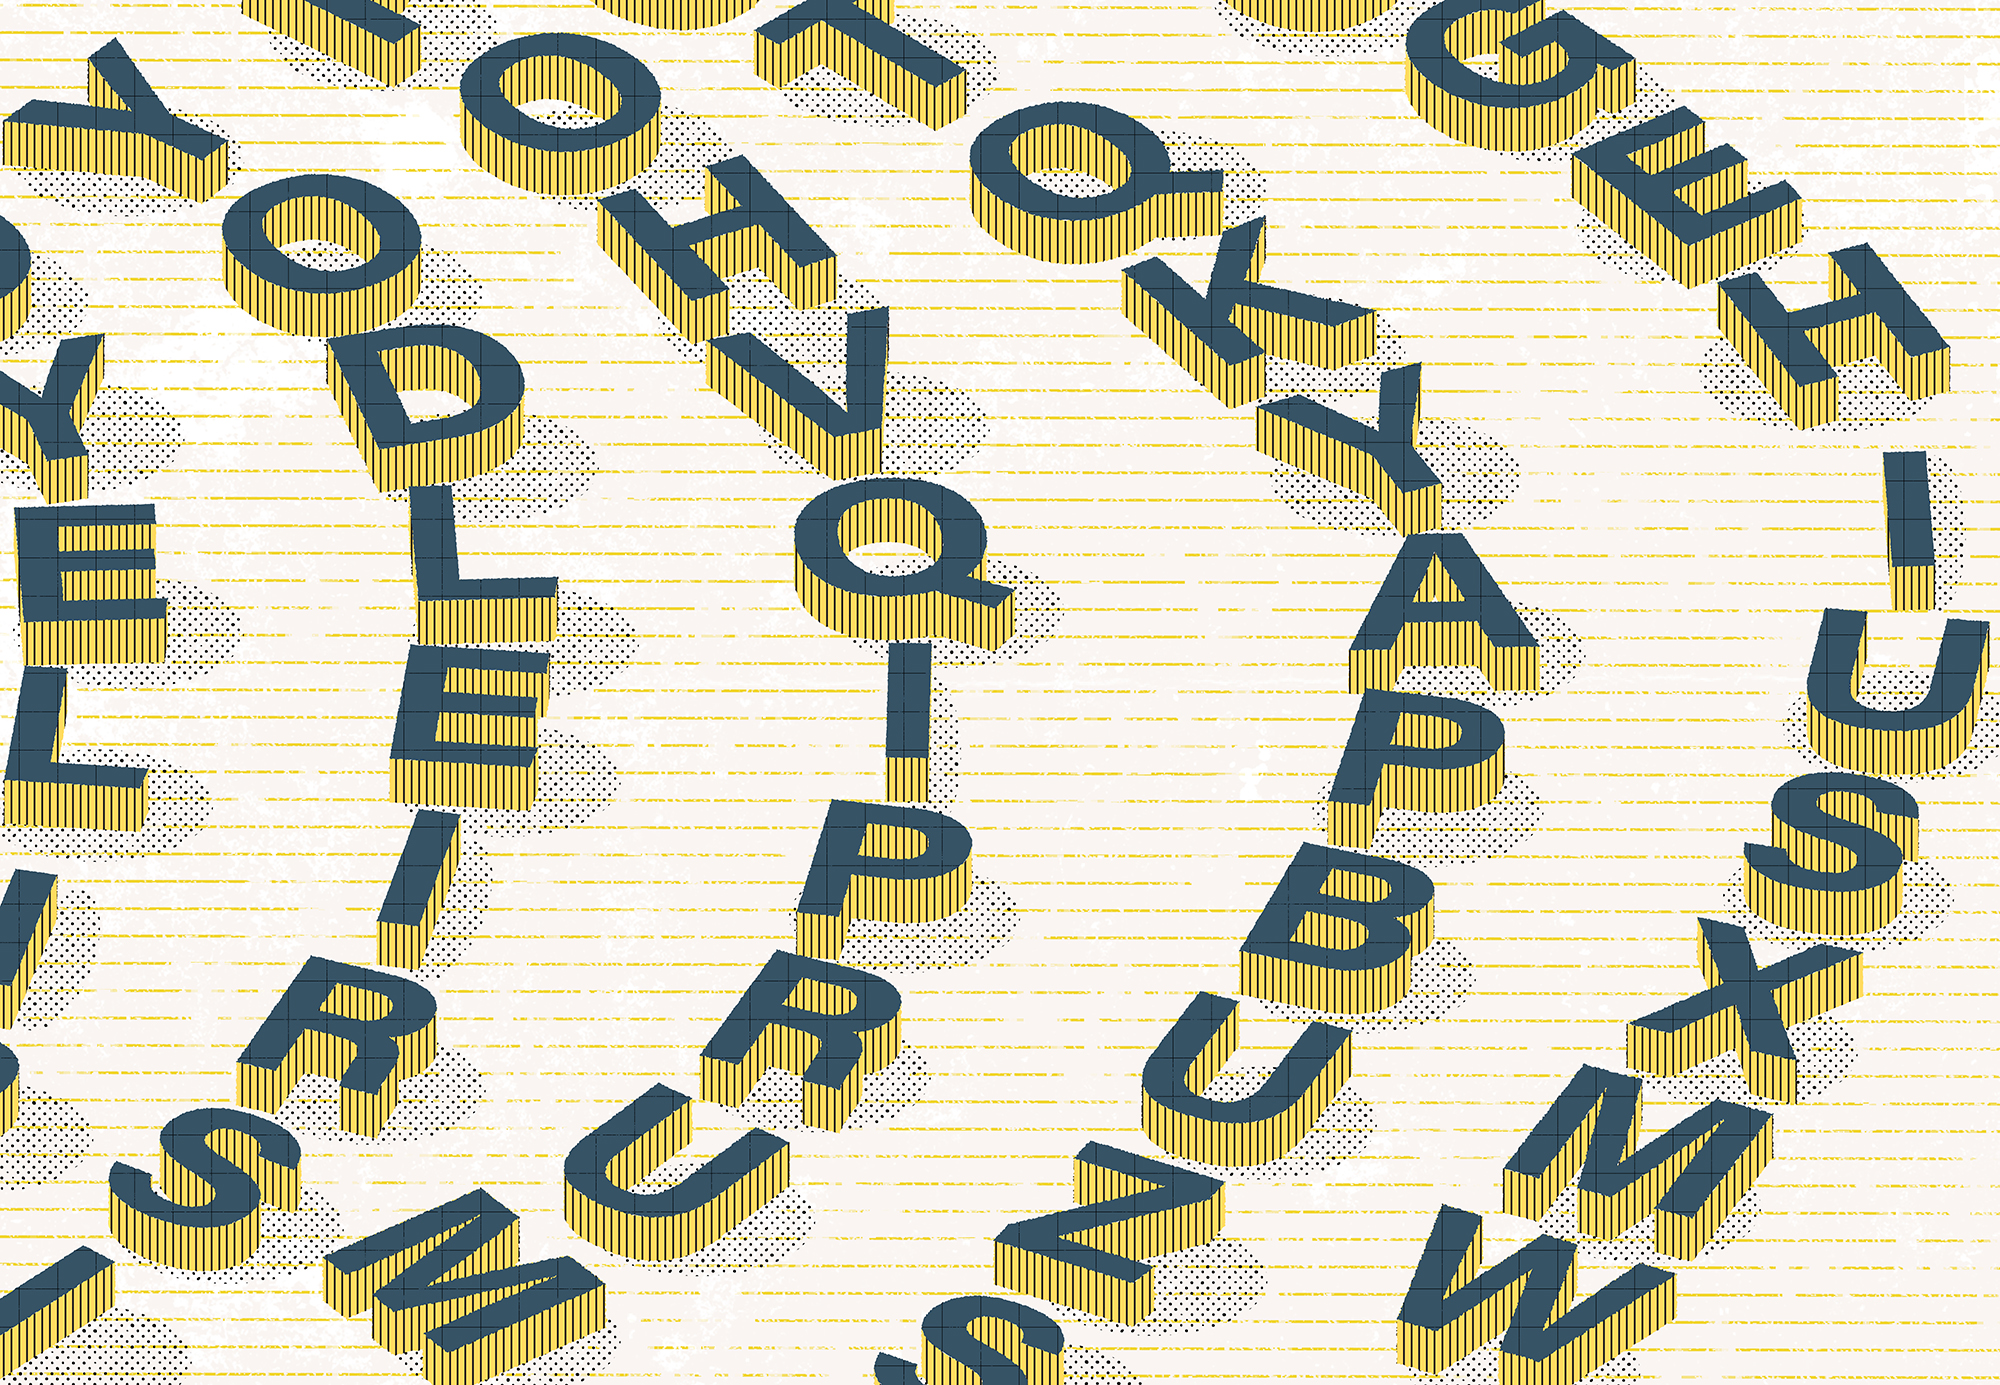 Illustration shows curved rows of different letters.